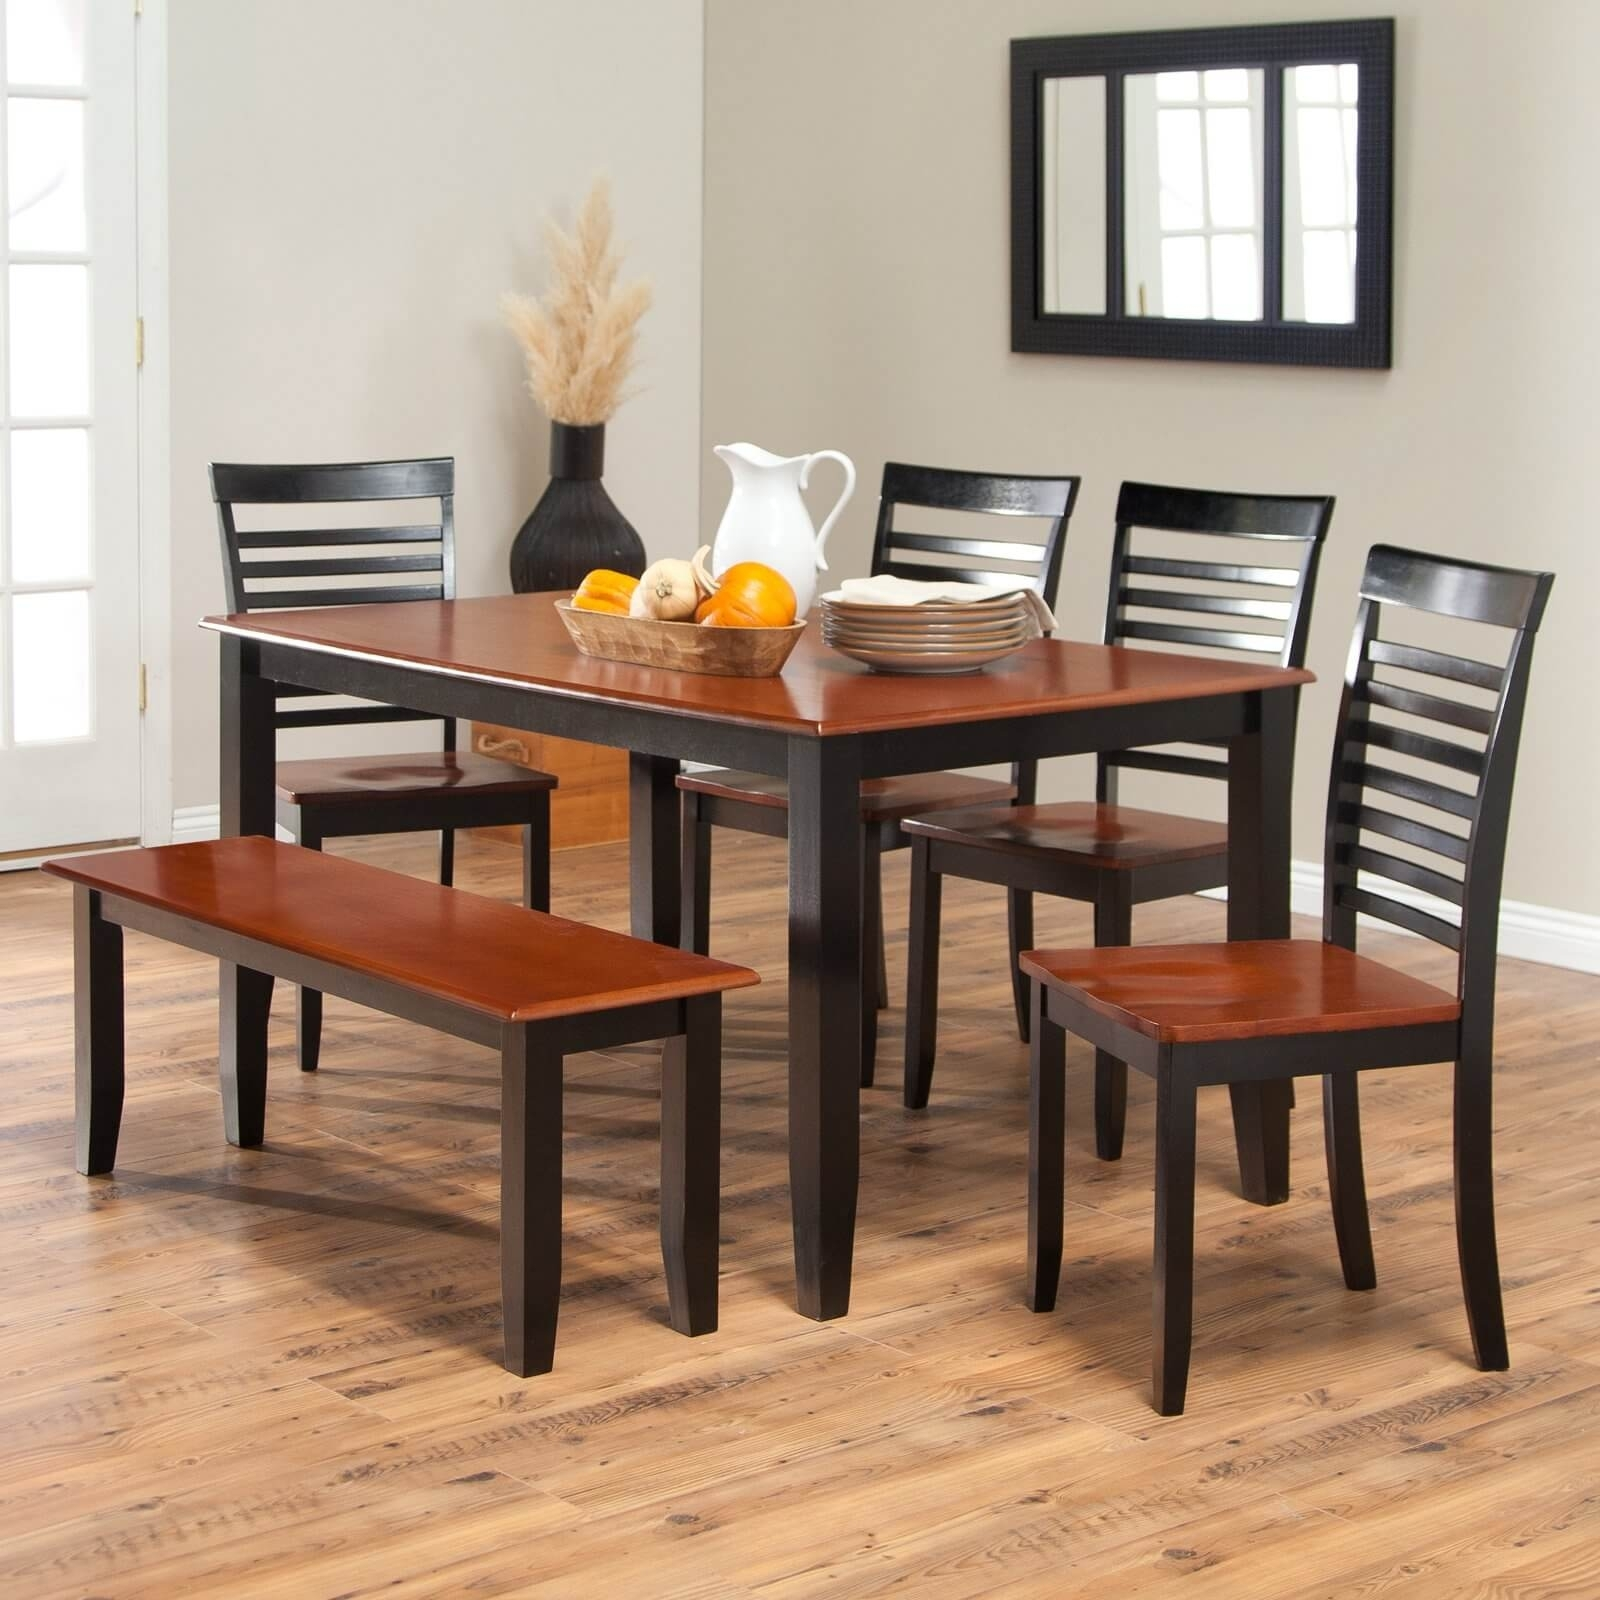 Popular Photo of Natural Brown Teak Wood Leather Dining Chairs